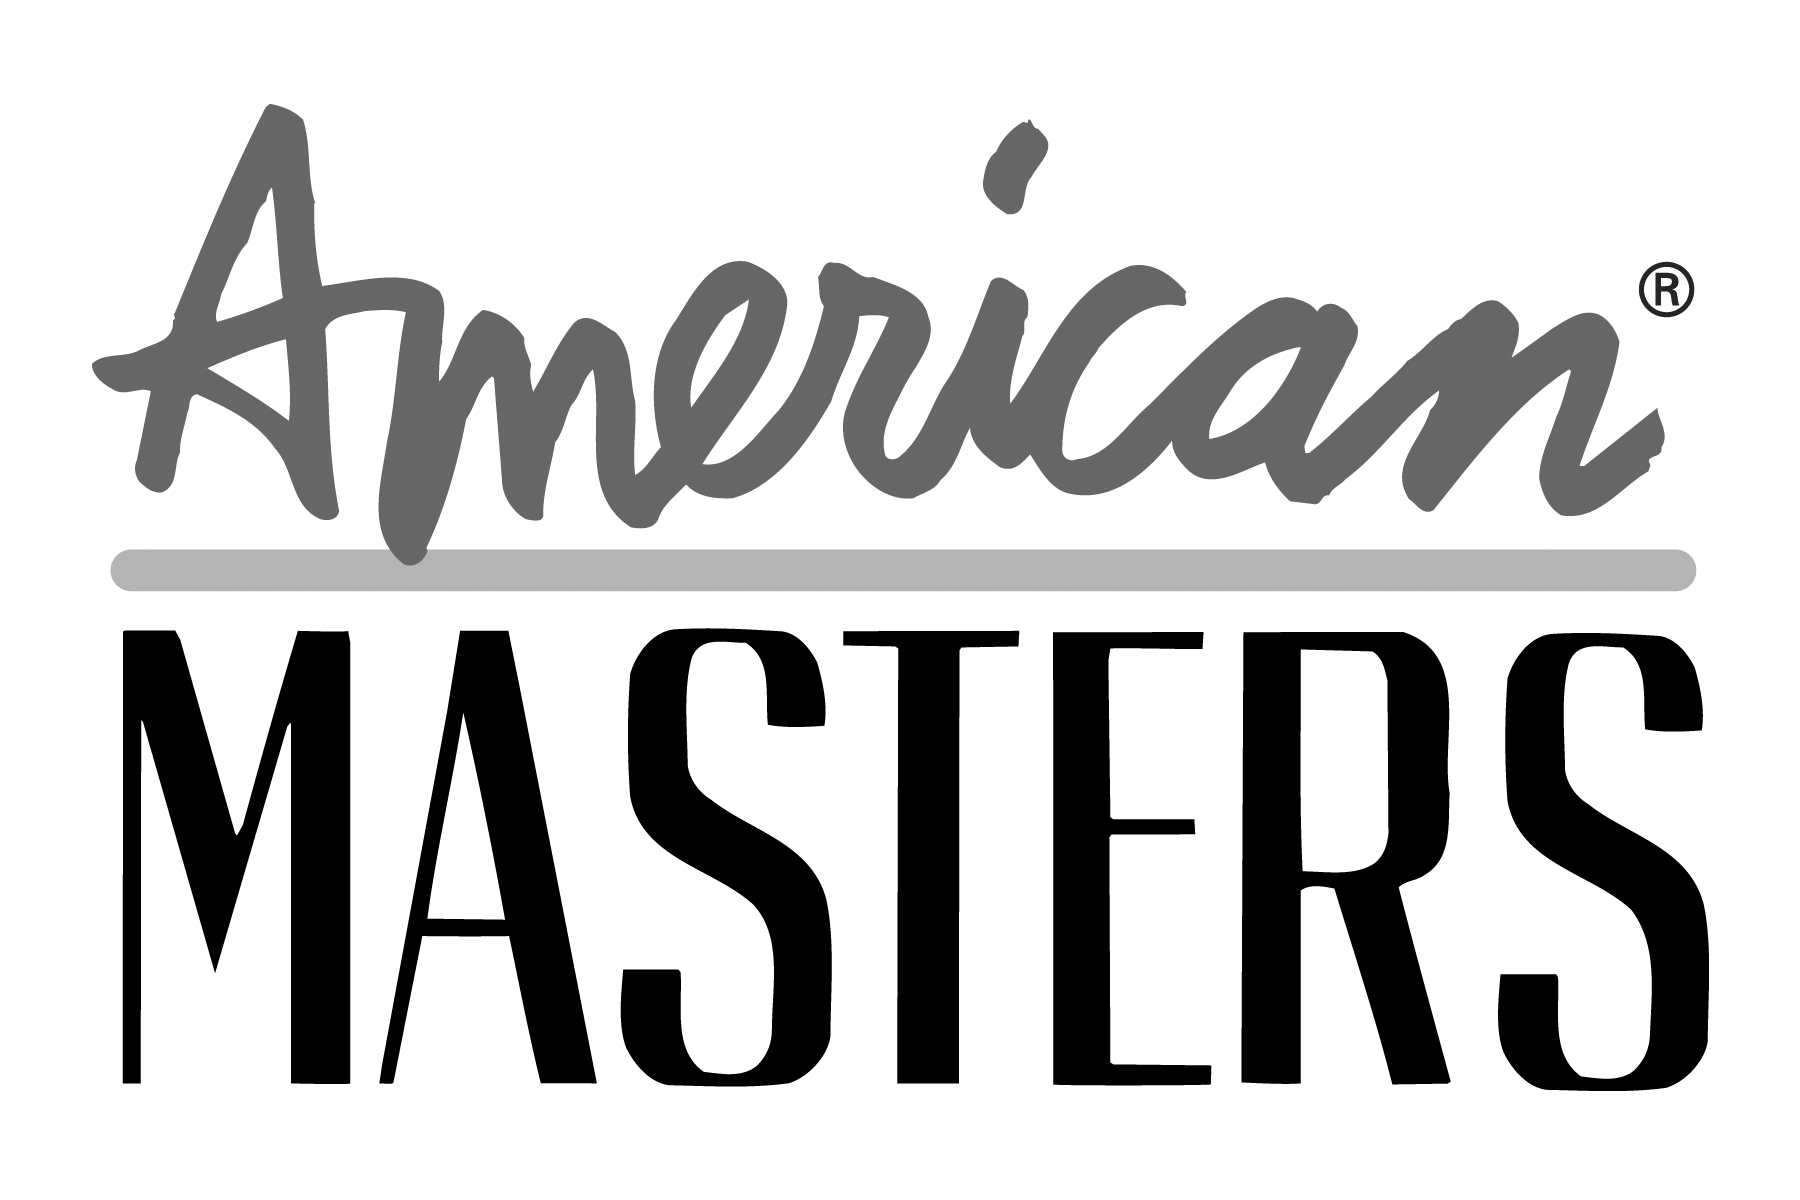 American Masters [TV Documentary Series]